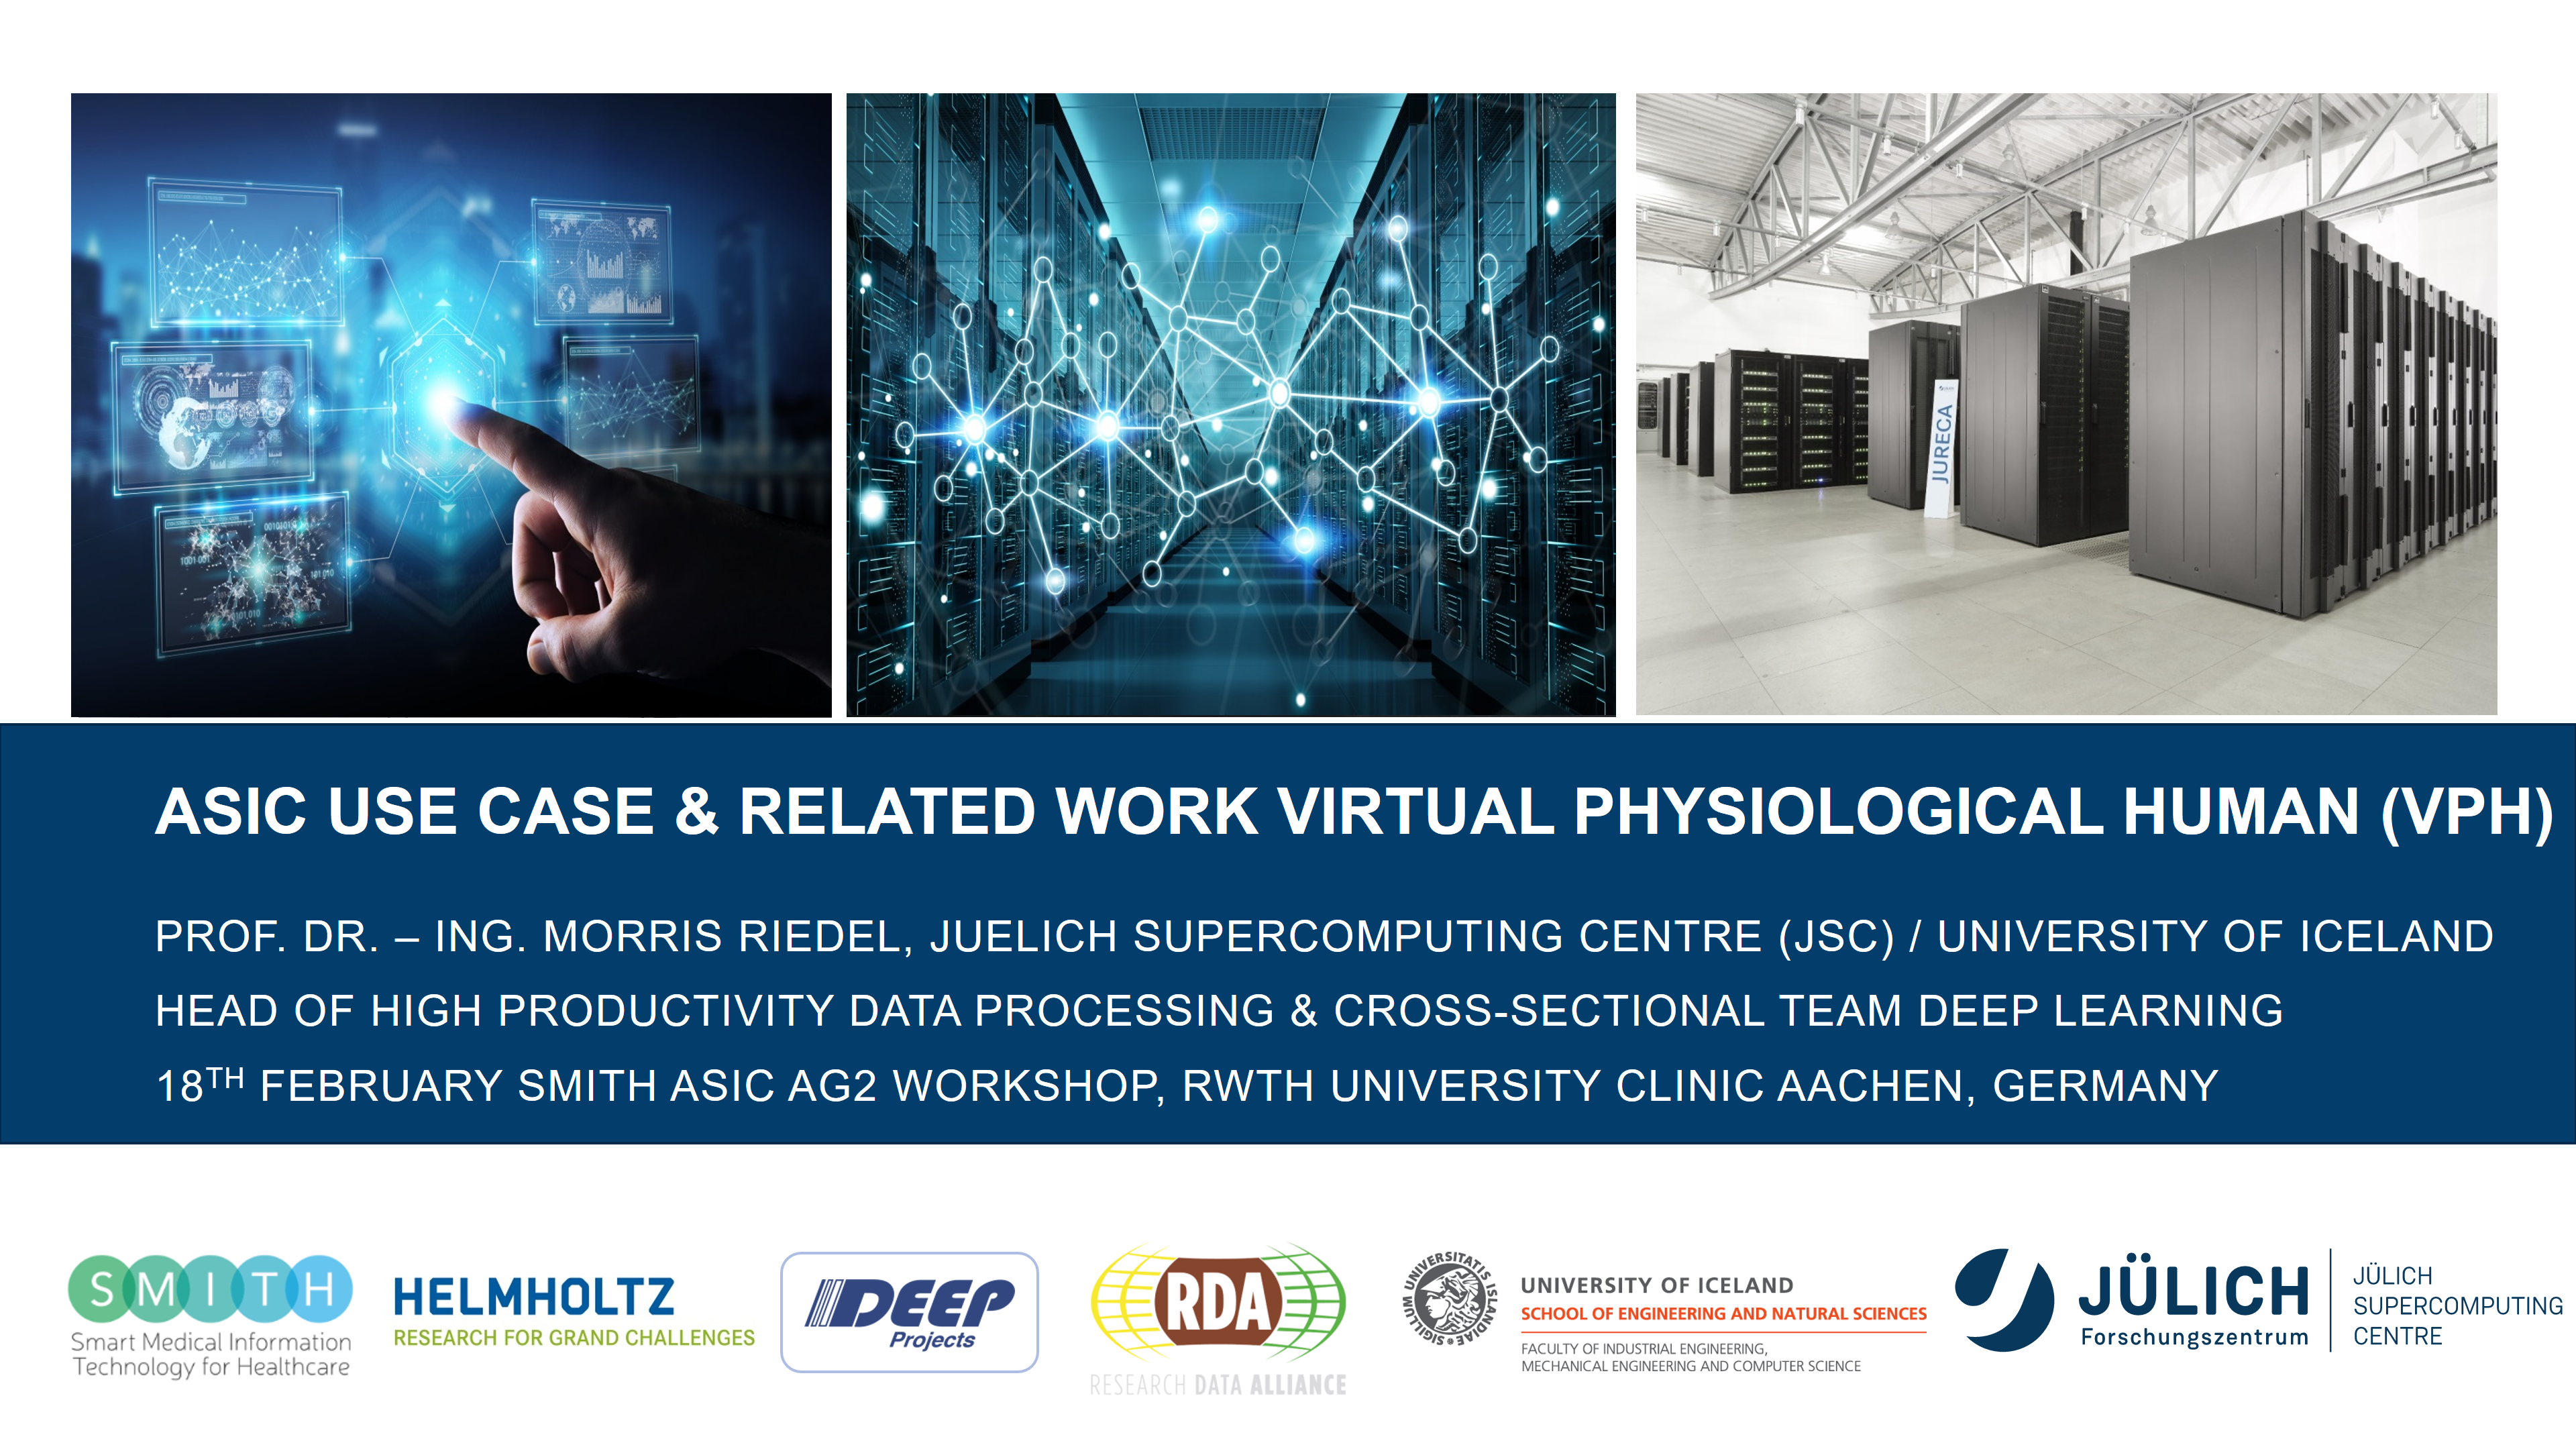 SMITH ASIC Use Case and Related Work Virtual Physiological Human